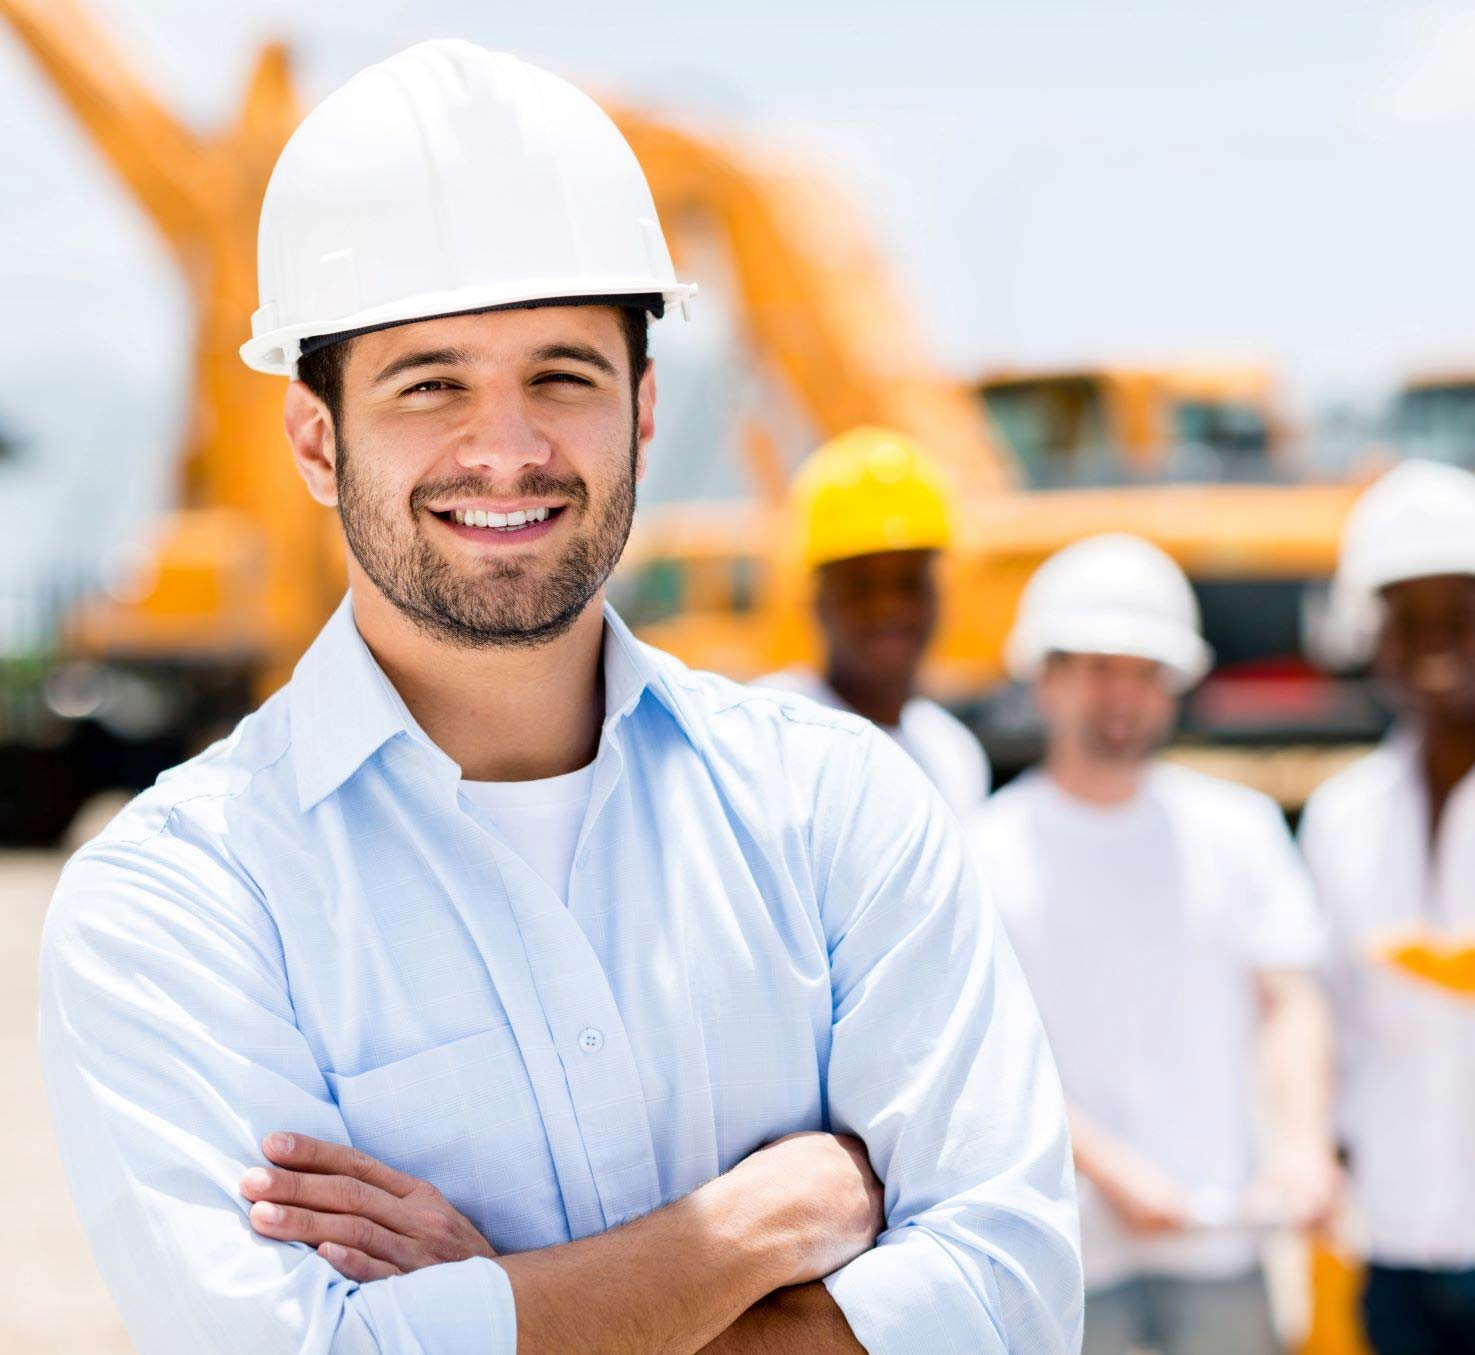 Man in a construction hat and blue shirt stood in front of other construction workers